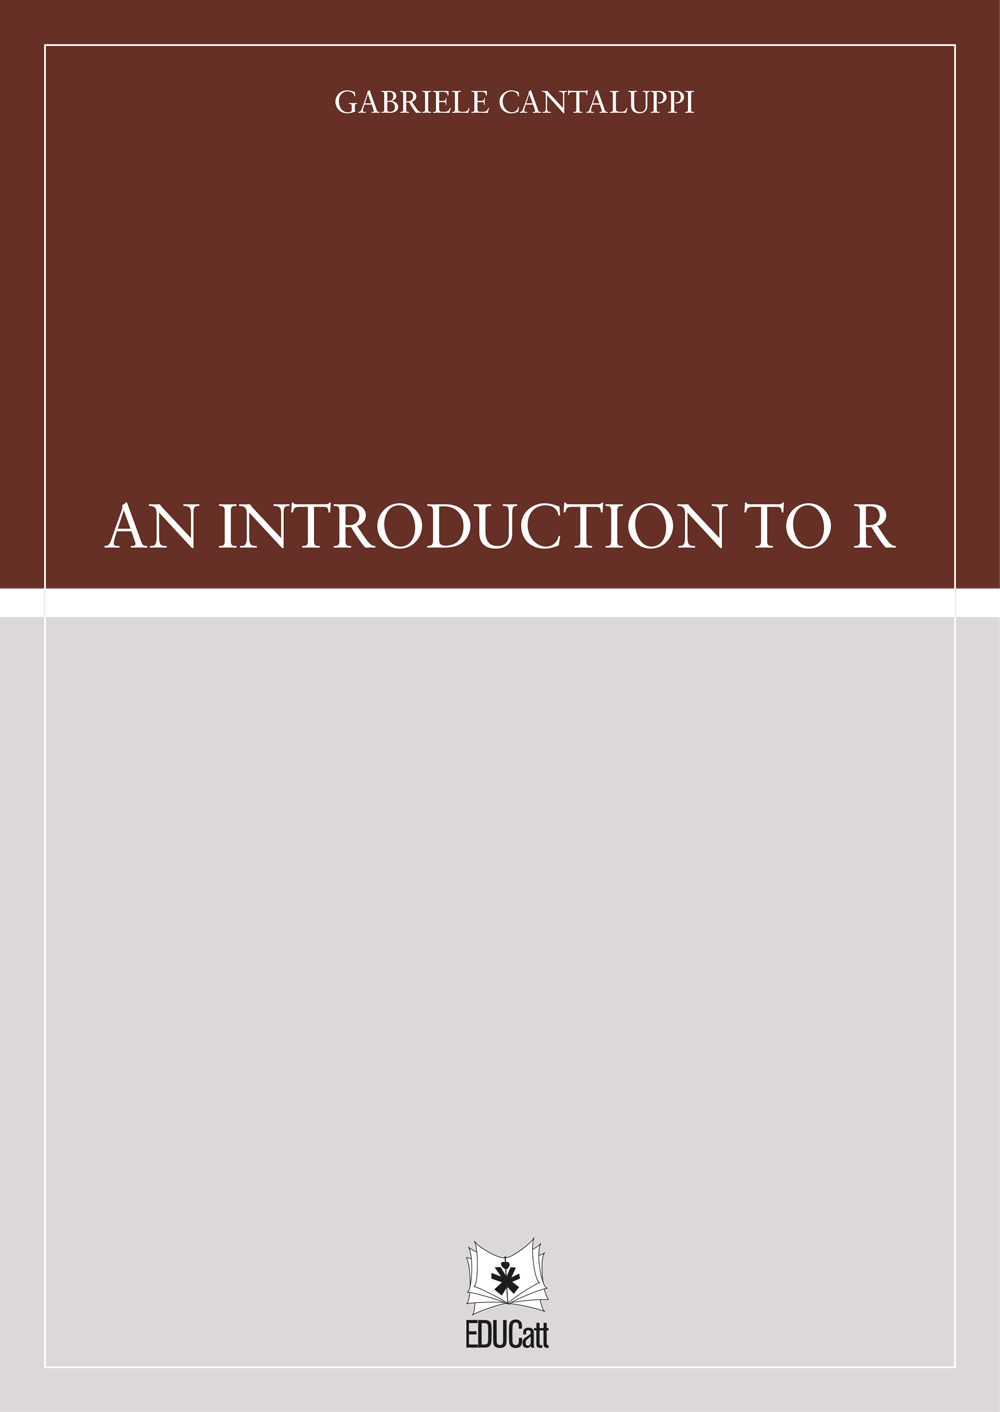 AN INTRODUCTION TO R (2021)